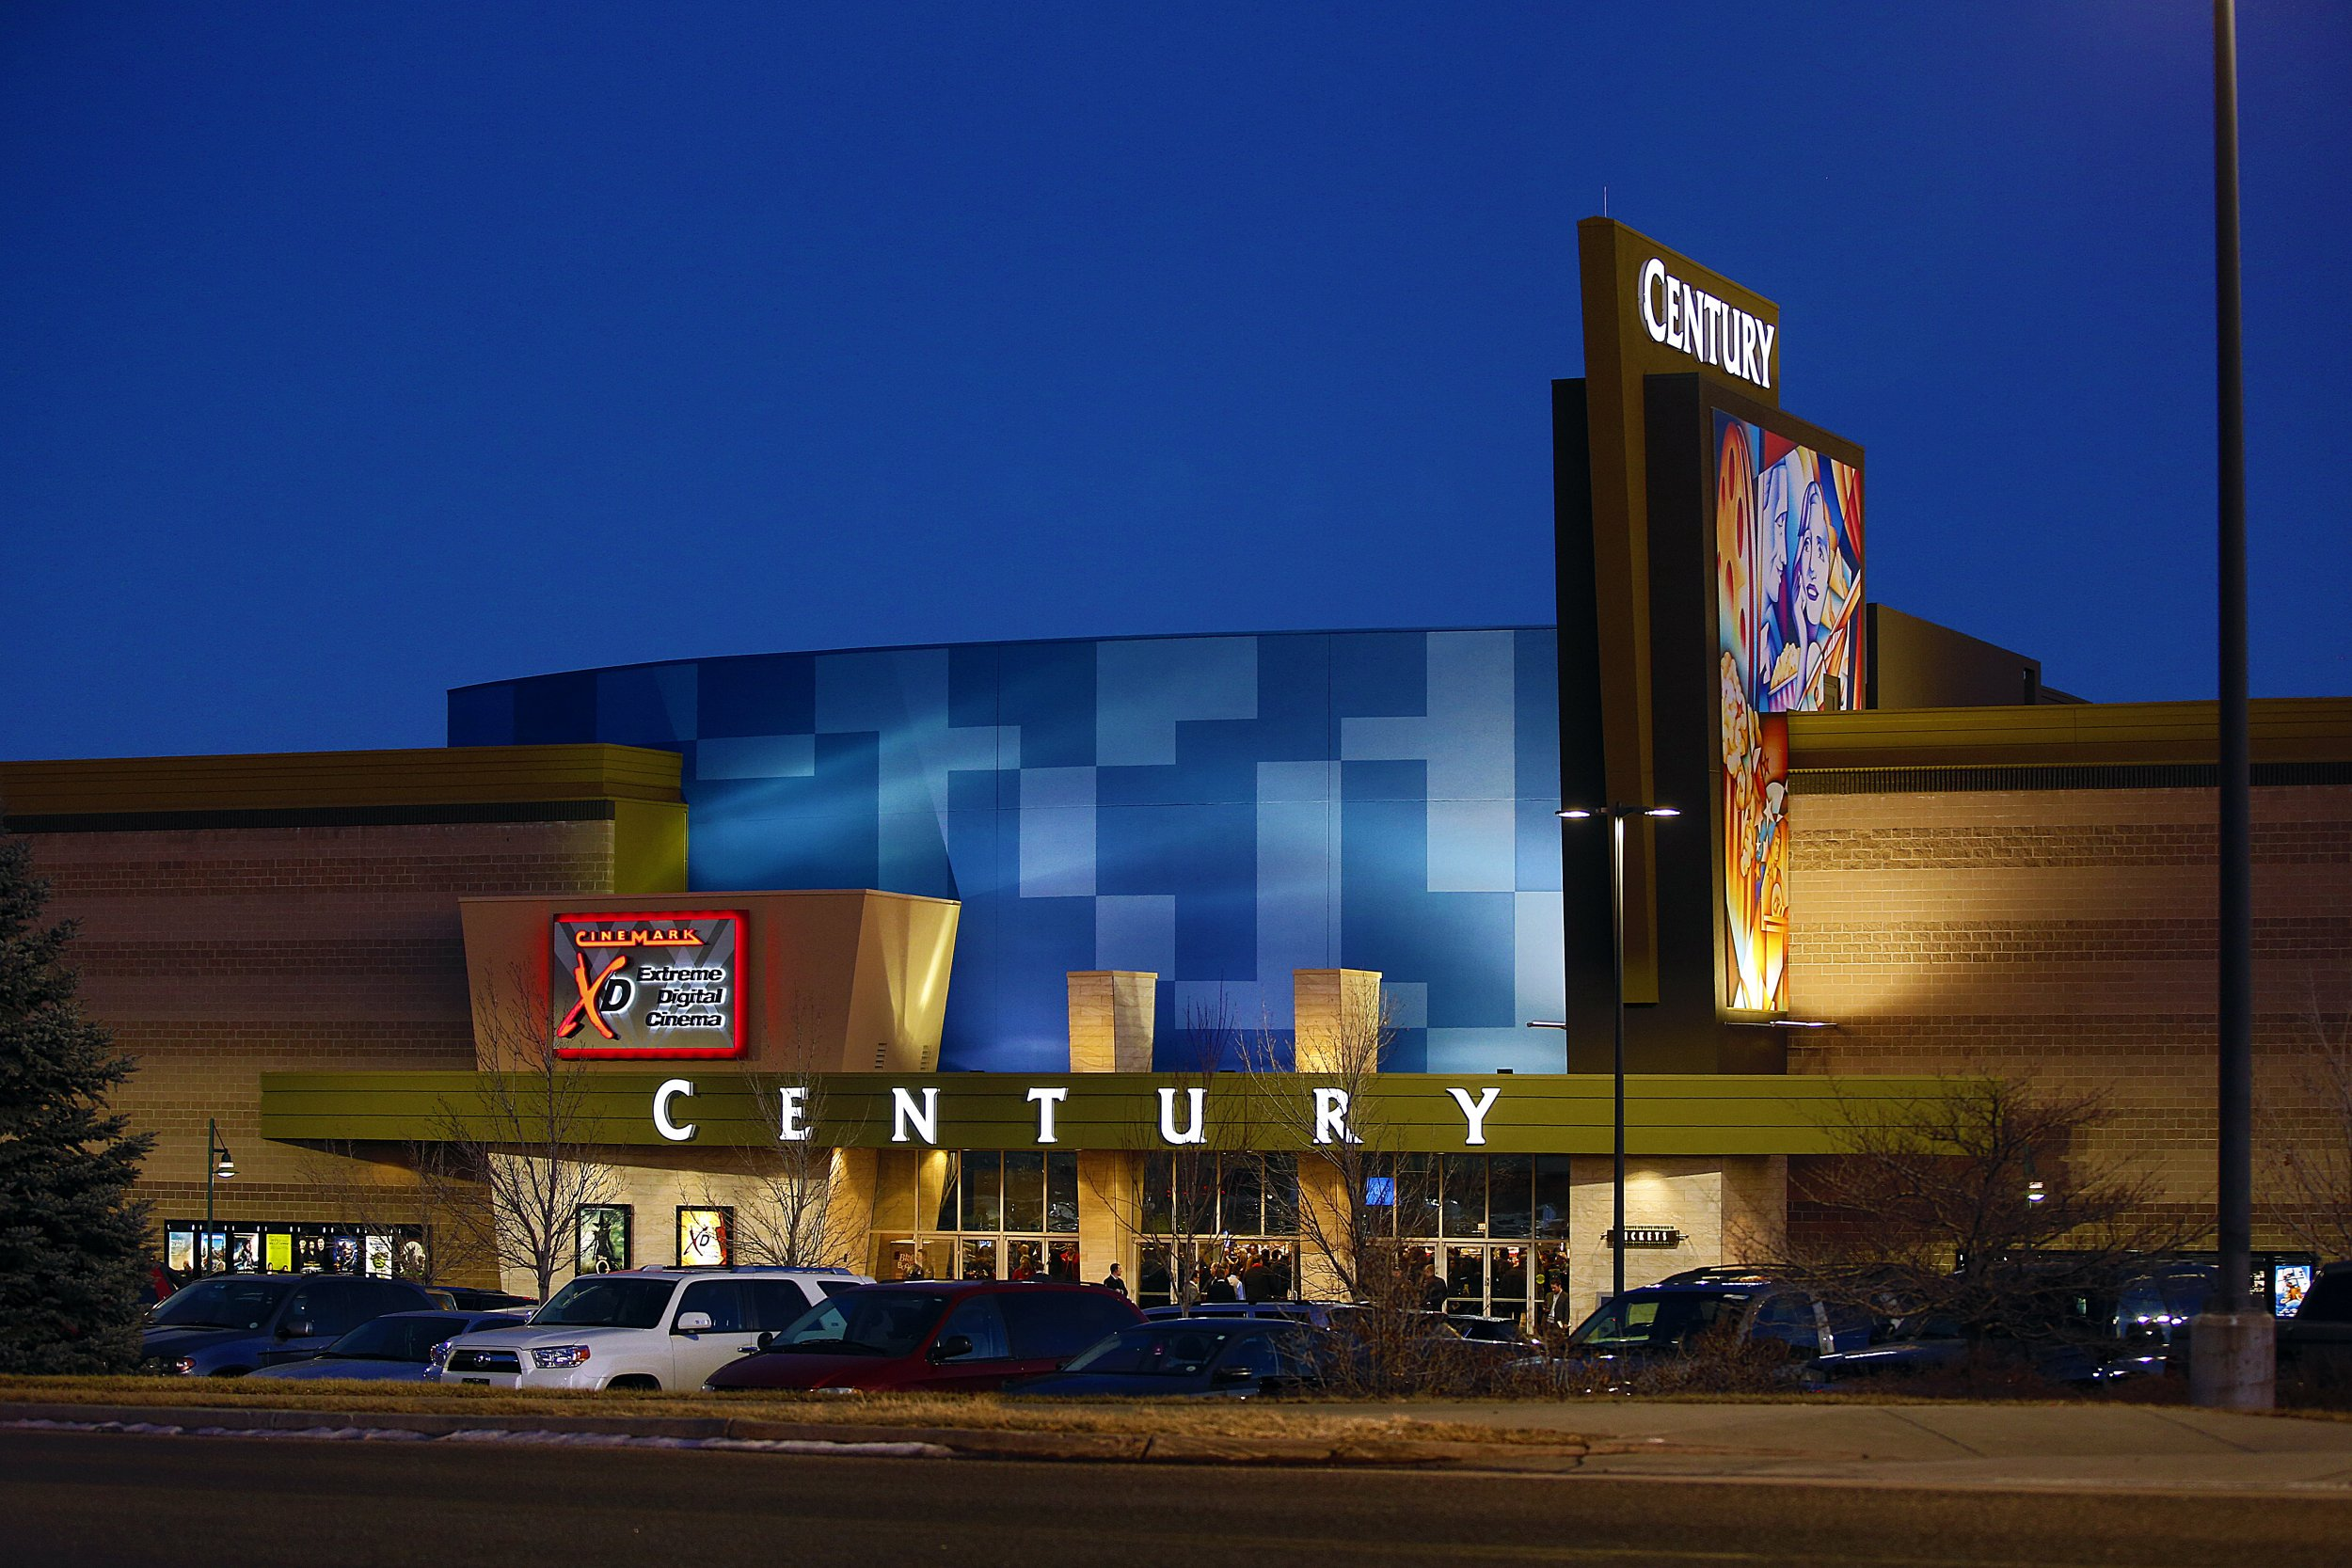 Cinemark Century in Aurora, Colorado